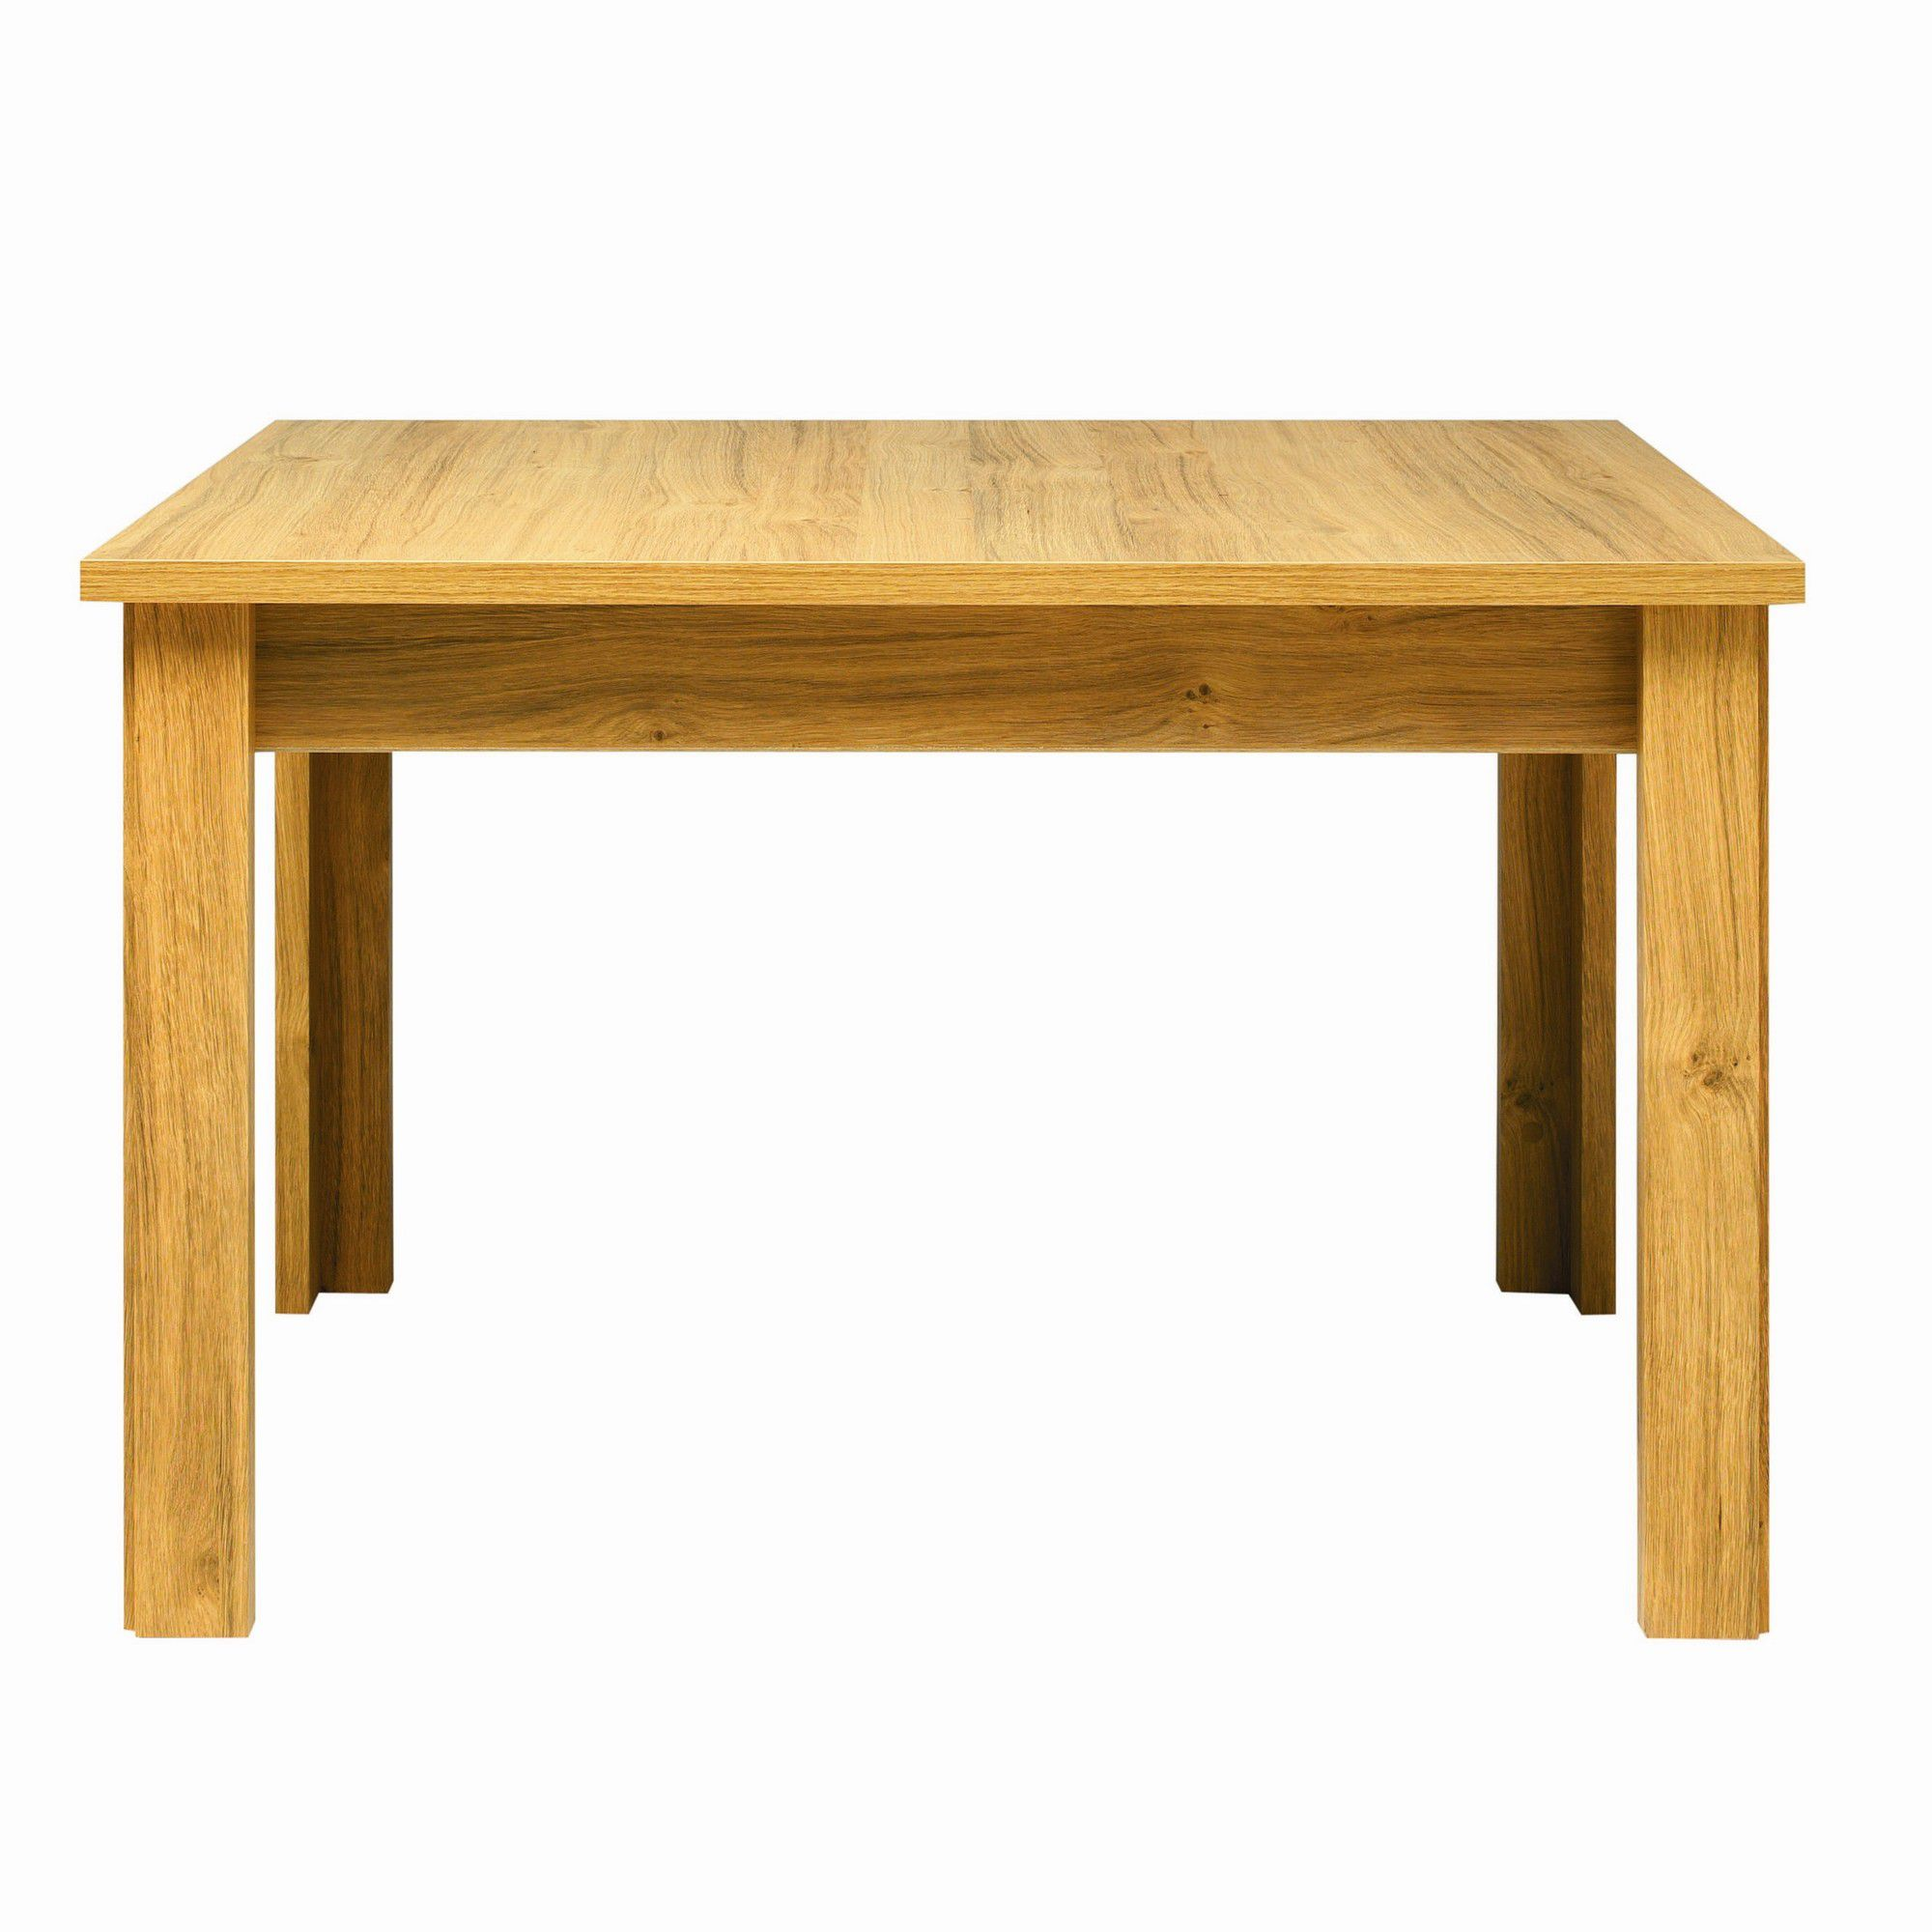 Other Caxton Strand Four Leg Oblong Fixed Top Dining Table in Oak - 120cm